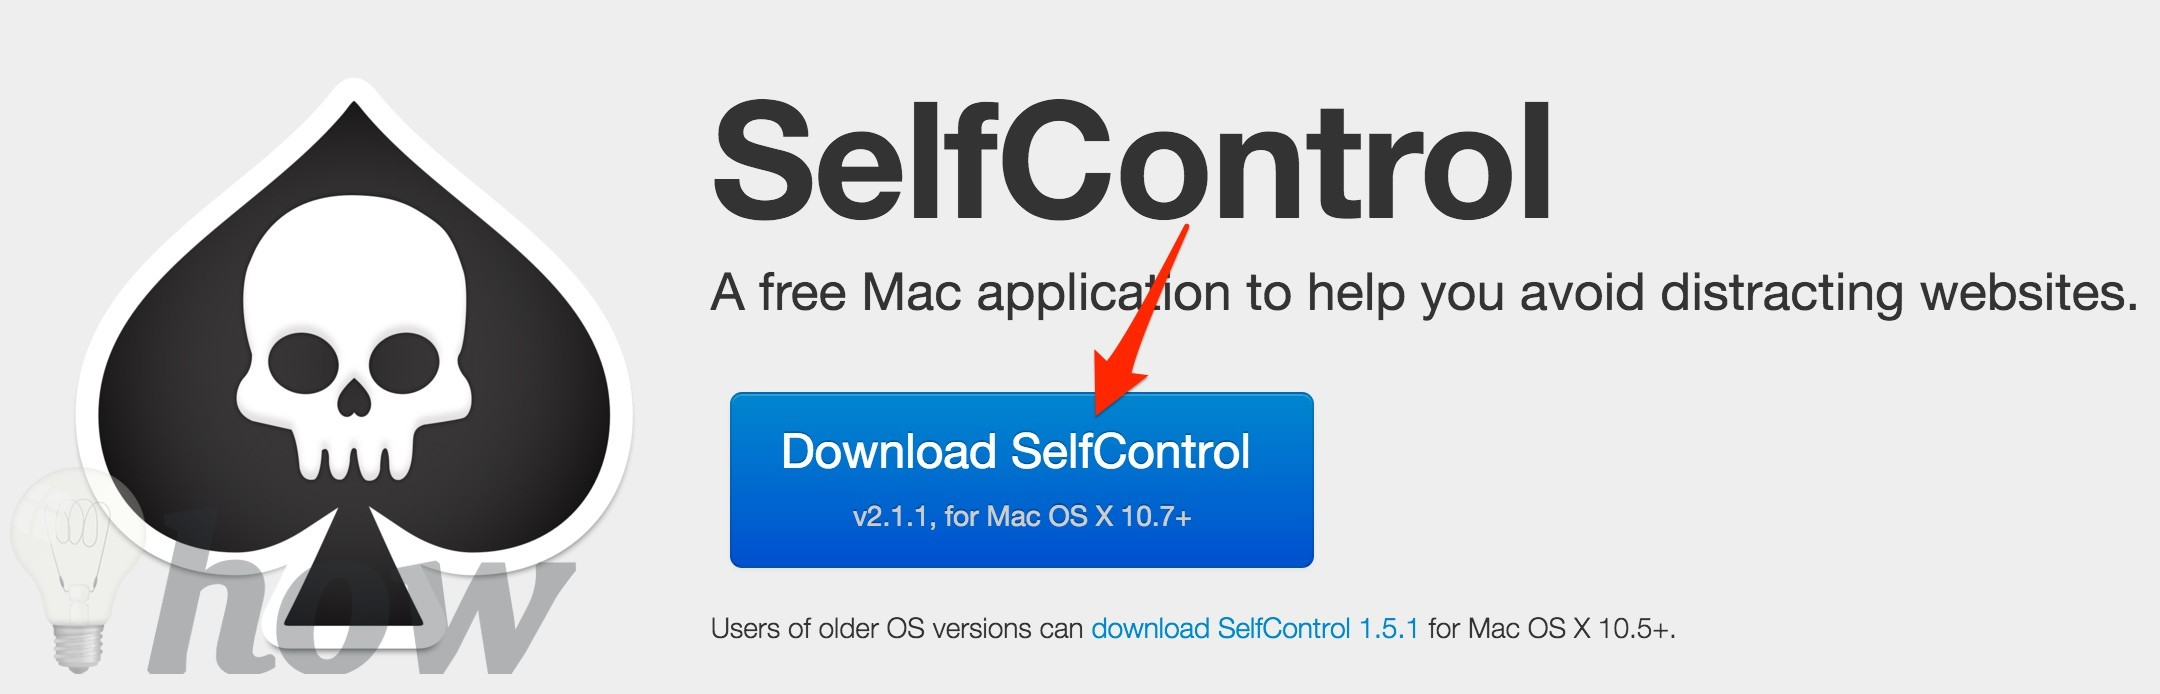 how to use firewall to block an application mac